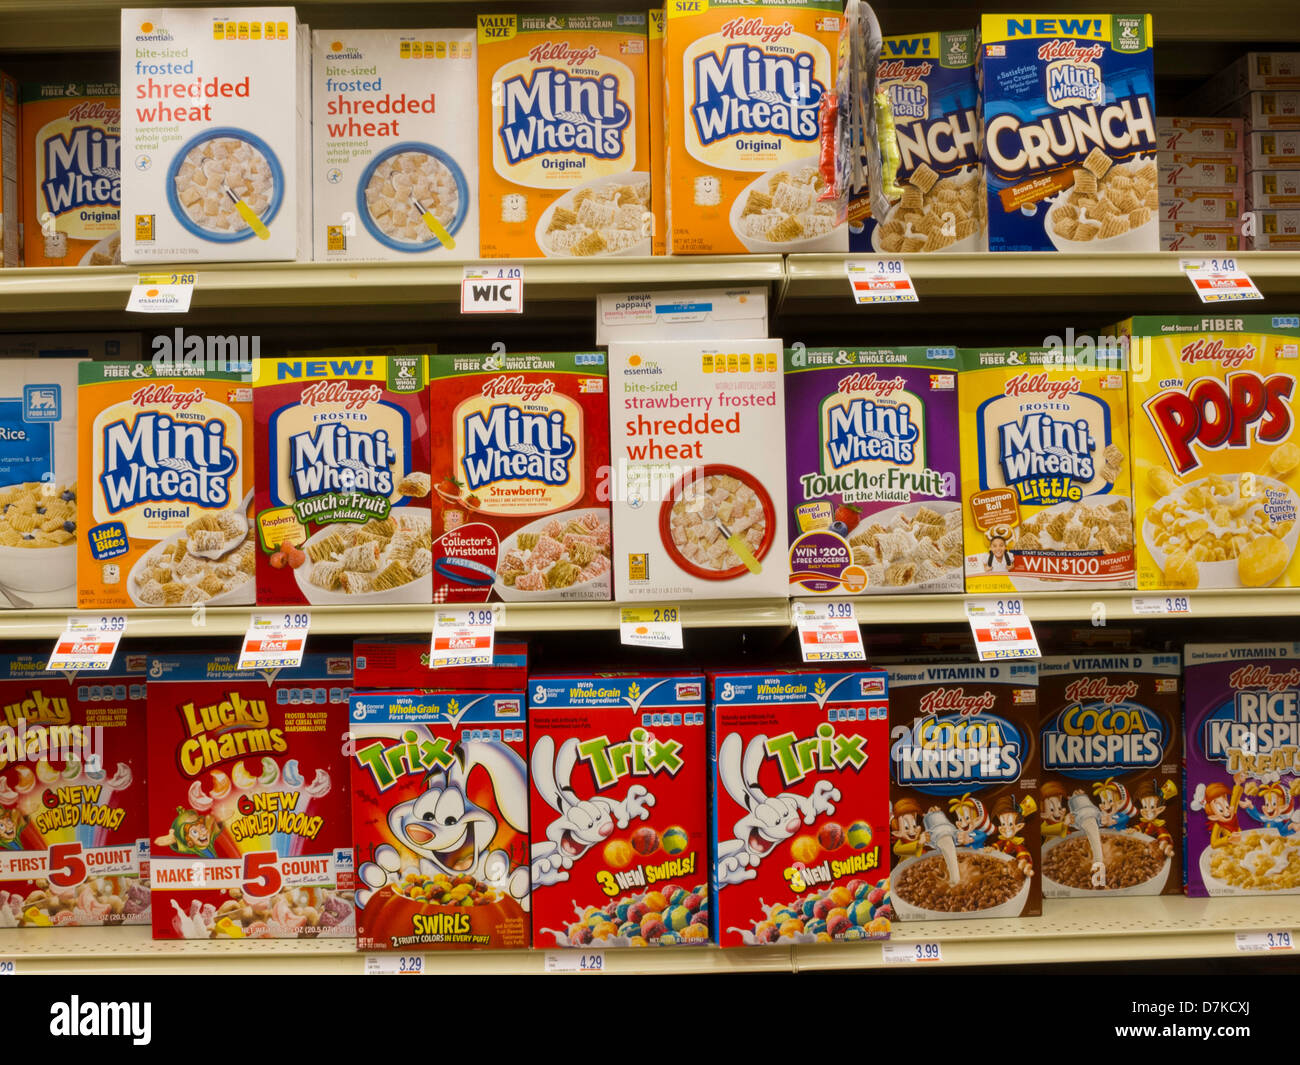 Food Lion Grocery Store in South Carolina, USA - Stock Image